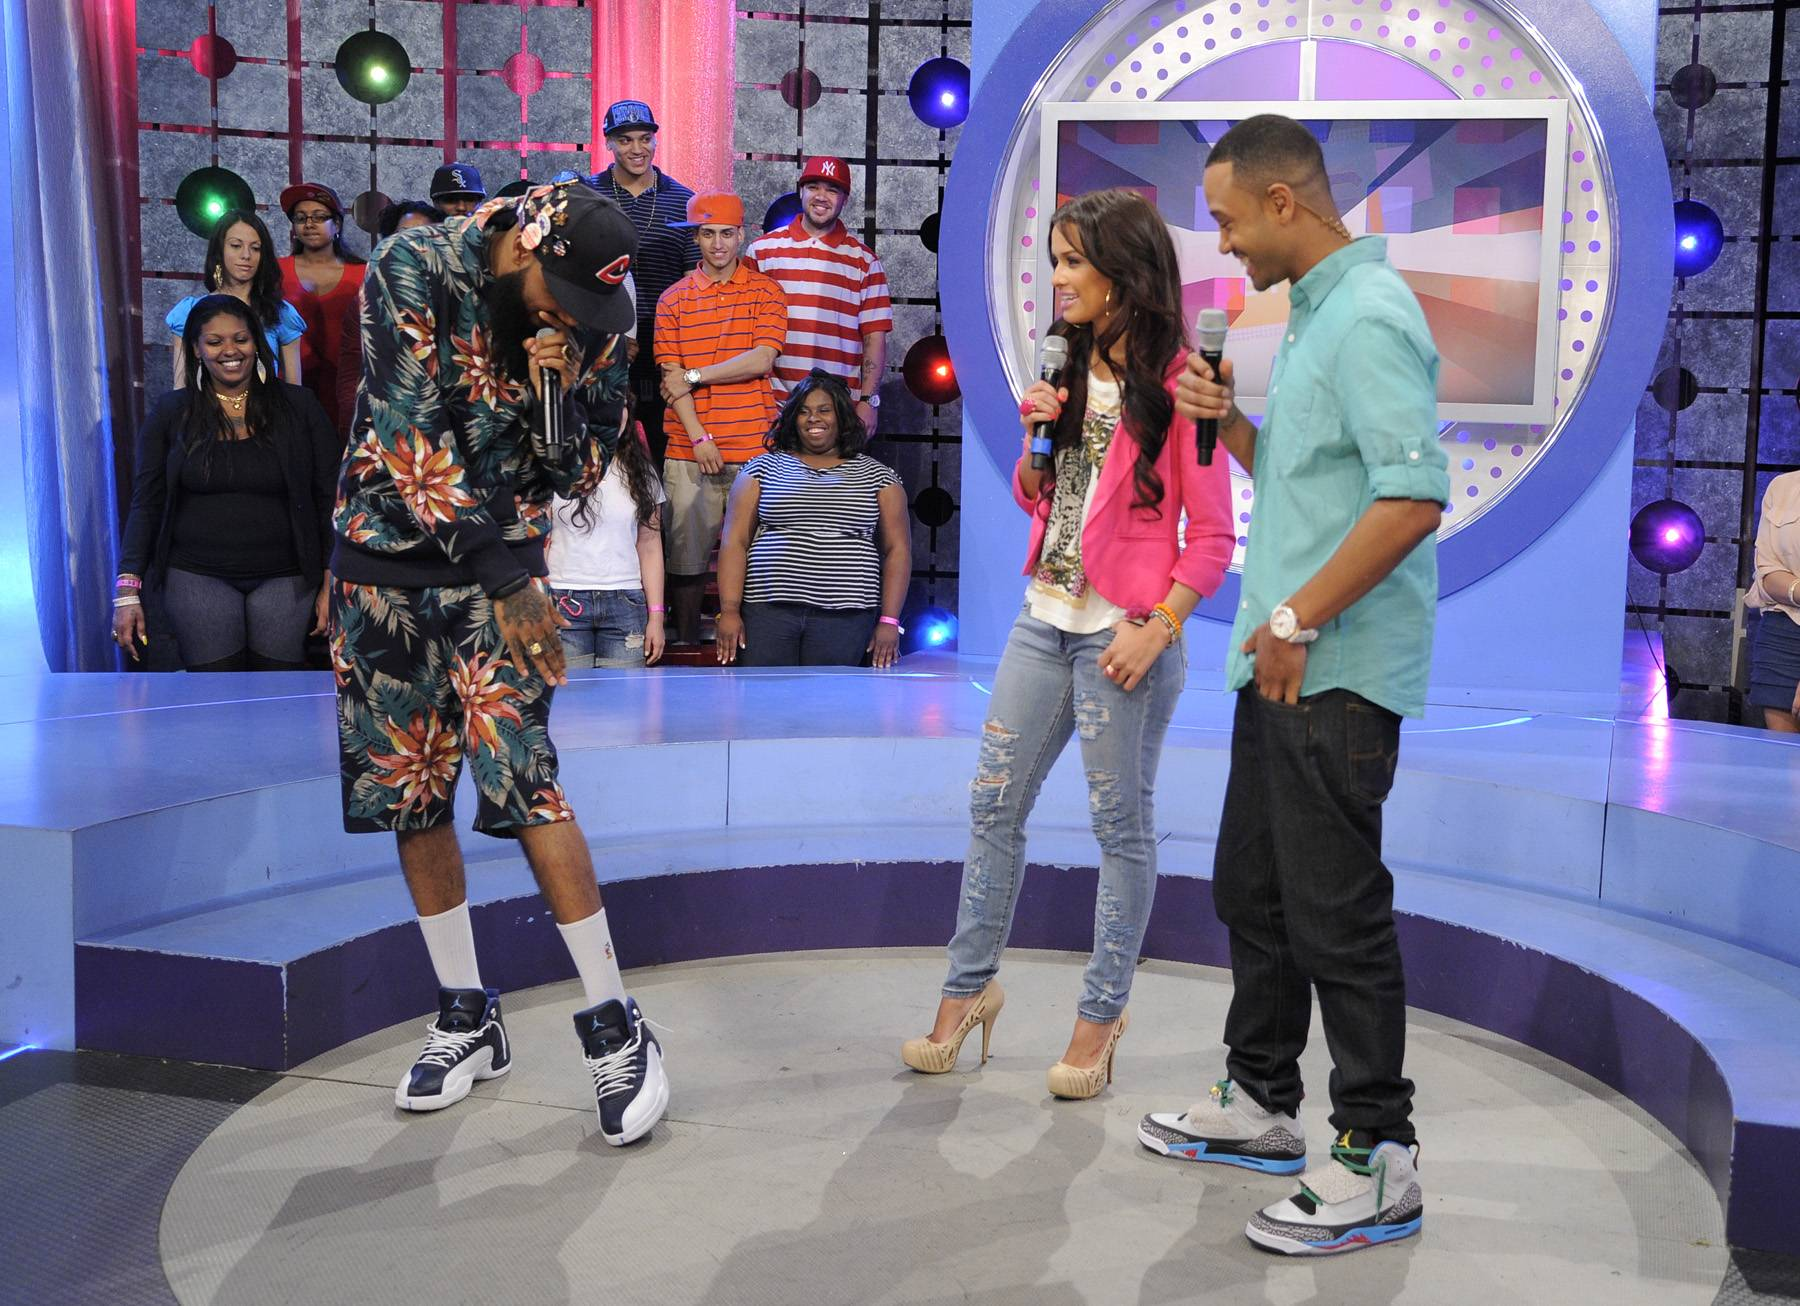 What's That? - Stalley of MMG with Rocsi Diaz and Terrence J at 106 & Park, April 17, 2012. (Photo: John Ricard/BET)